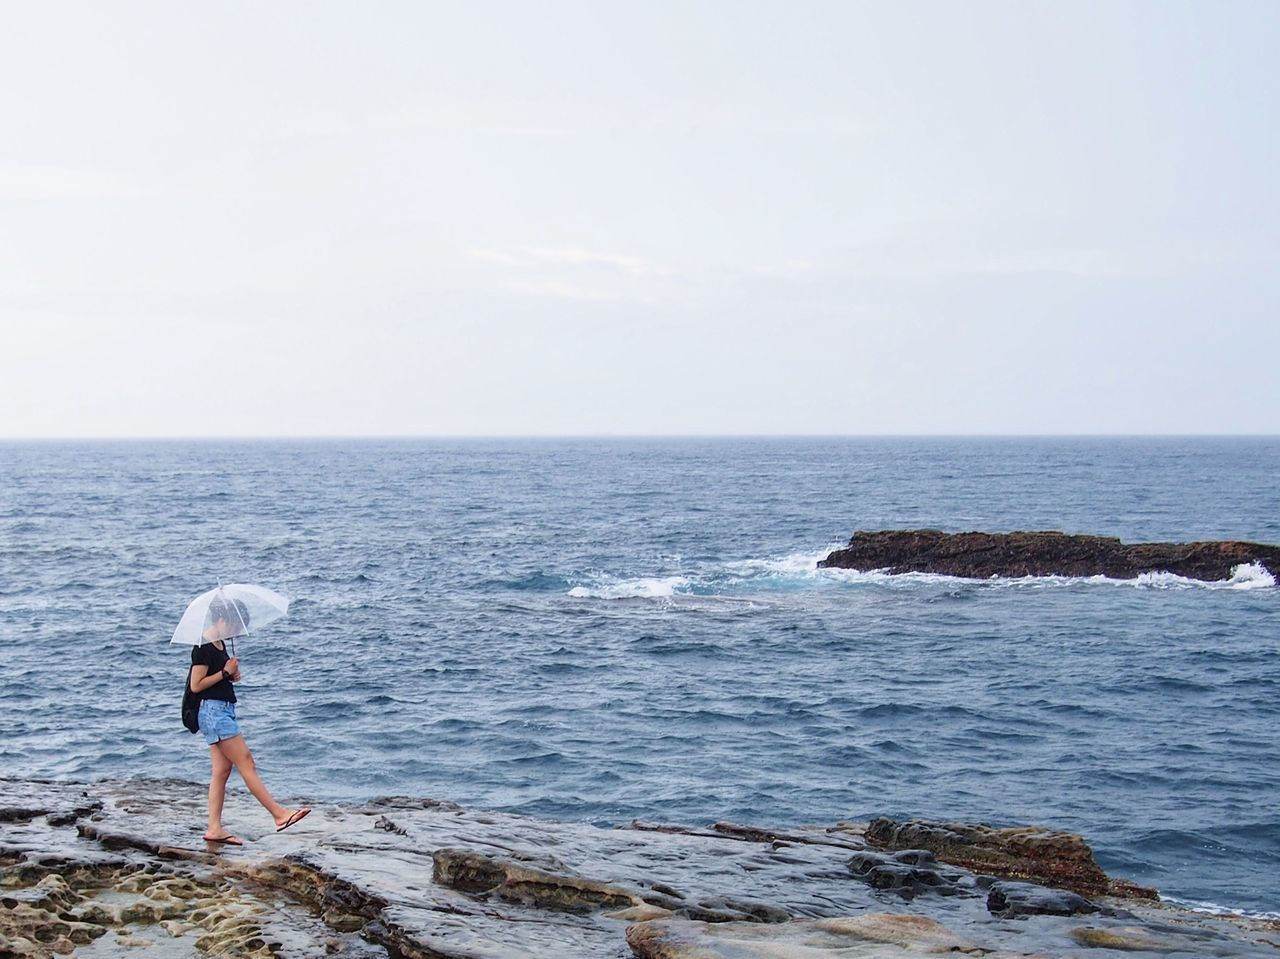 sea, one person, horizon over water, full length, water, real people, rear view, standing, nature, beauty in nature, scenics, day, casual clothing, sky, outdoors, leisure activity, women, young adult, adult, people, adults only